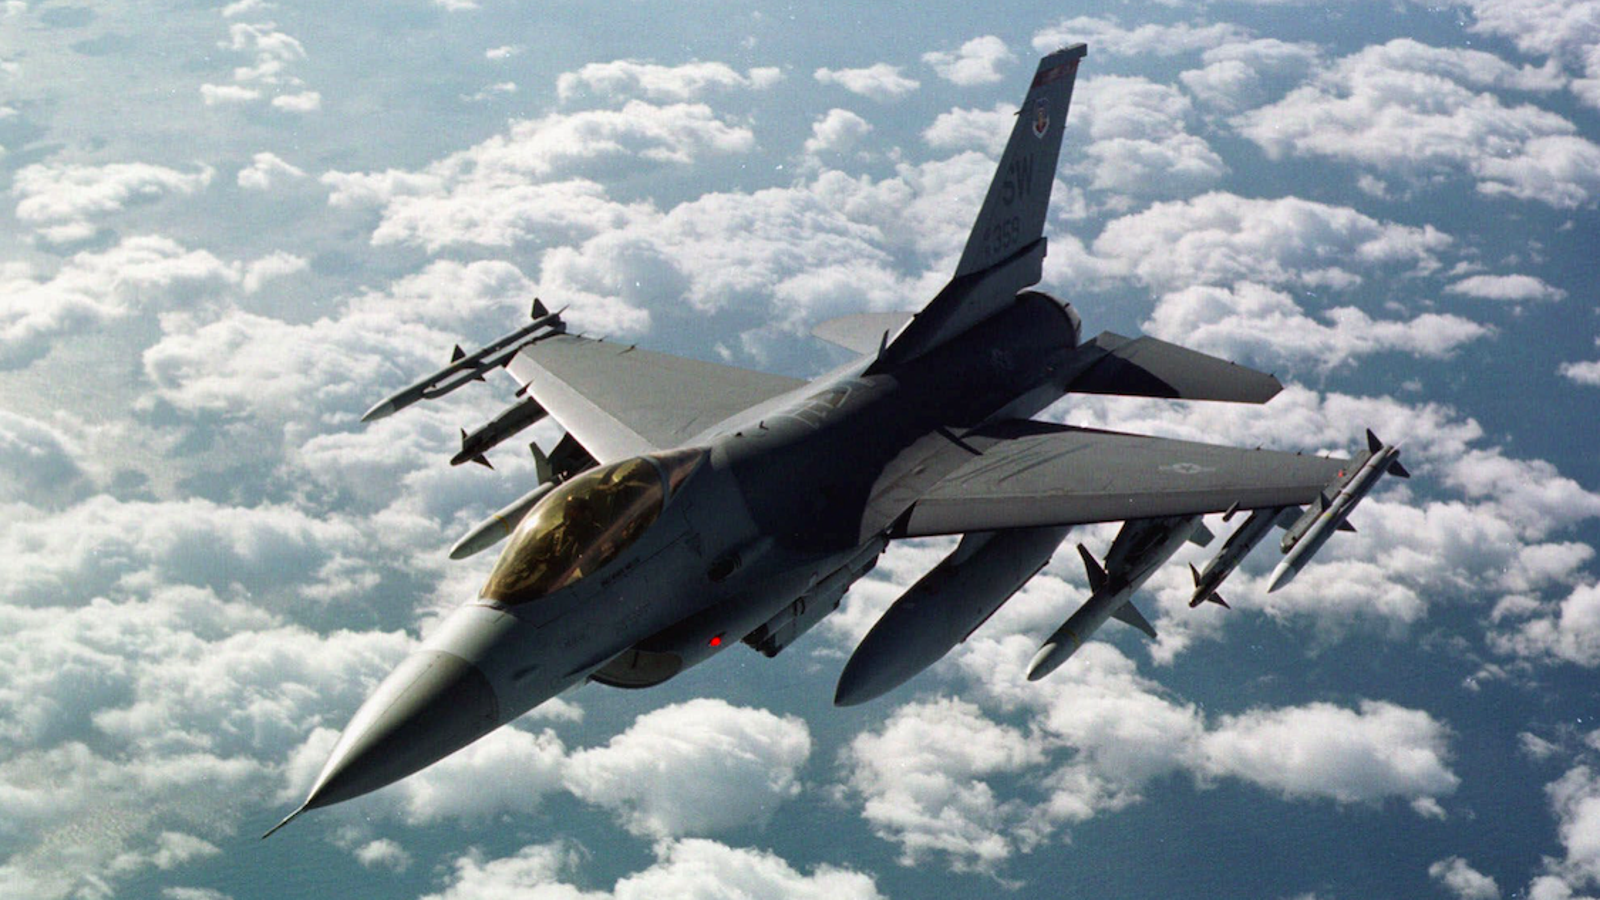 Tiny Bacteria Are Eating America's Fighter Jets